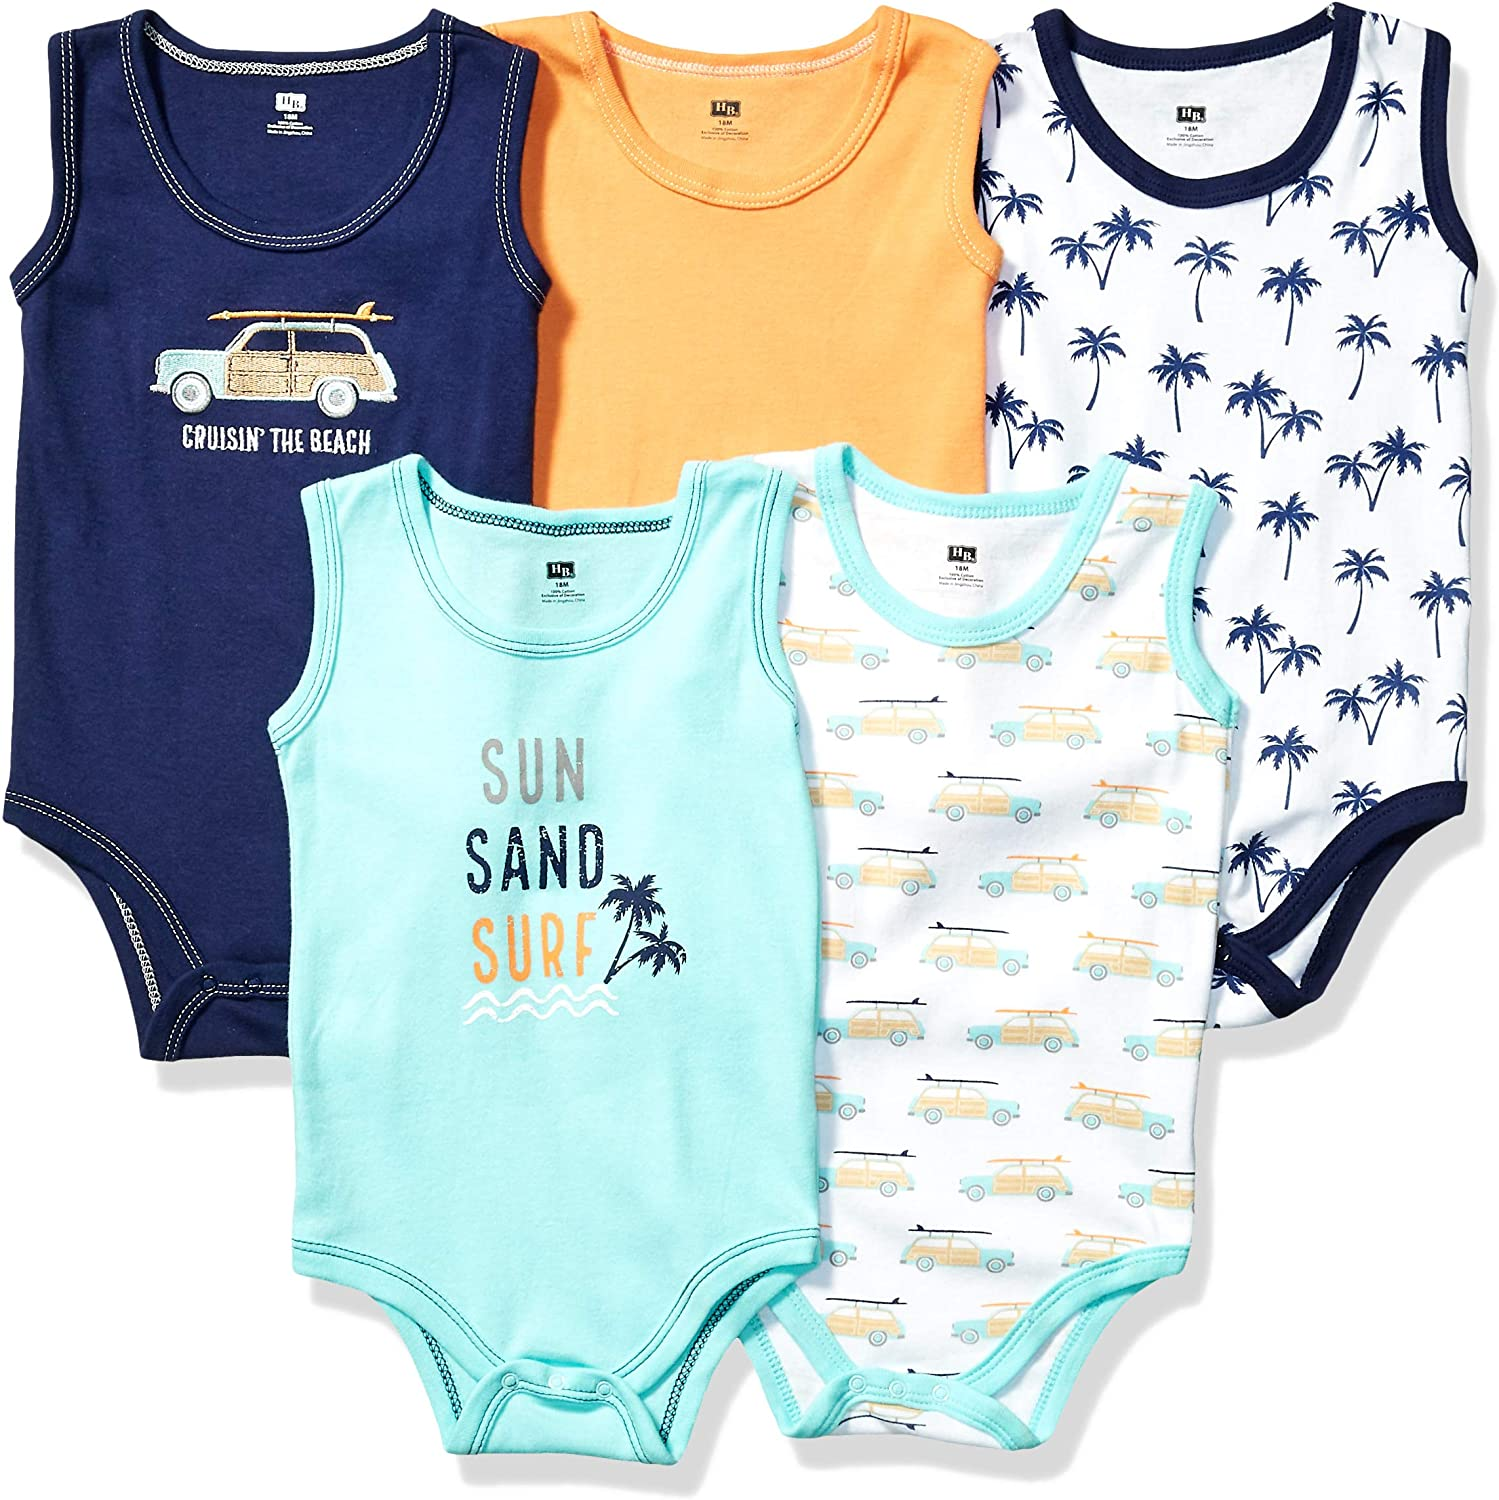 New sales Hudson Baby Unisex Safety and trust Cotton Bodysuits Sleeveless